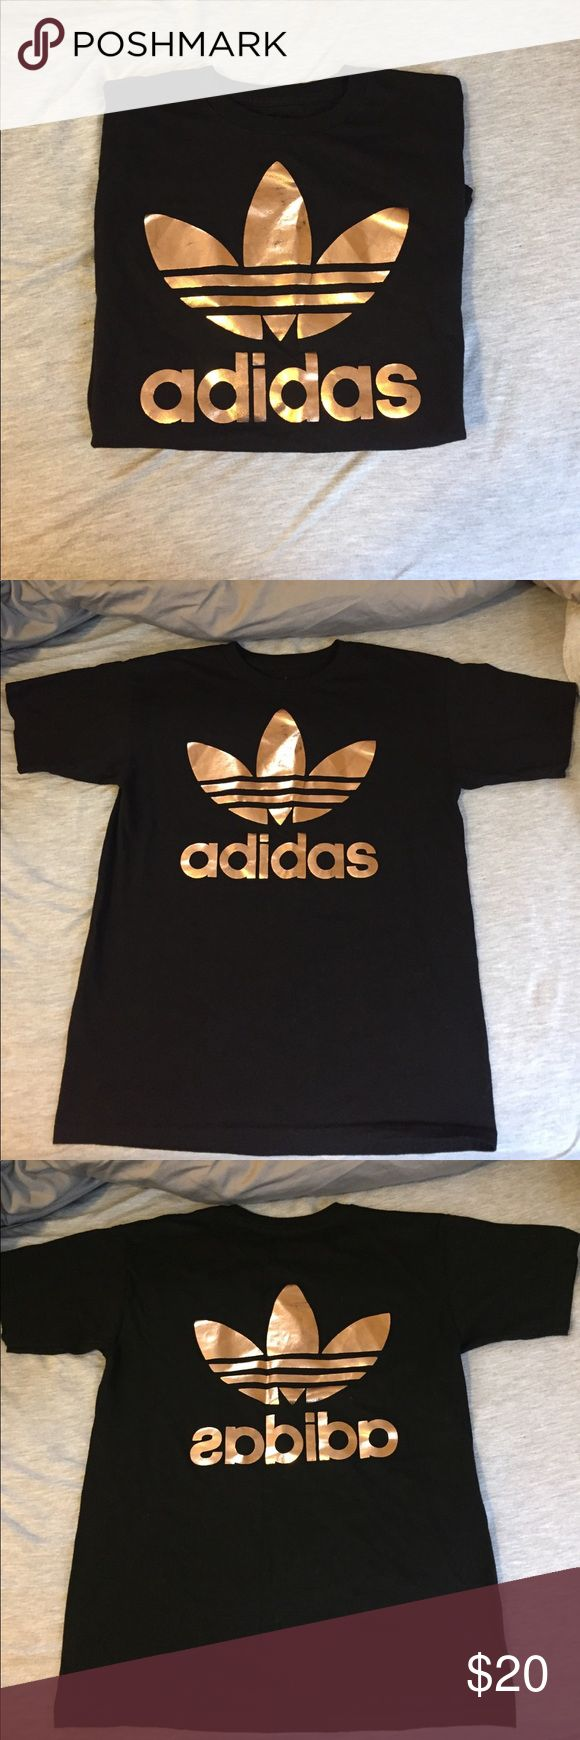 Black and rose gold metallic adidas Original Tee Black cotton adidas T shirt with rose gold metallic adidas original logo on both front and back of t shirt. Size small in women's (high neck line). Very lightly worn and good condition. Adidas Tops Tees - Short Sleeve